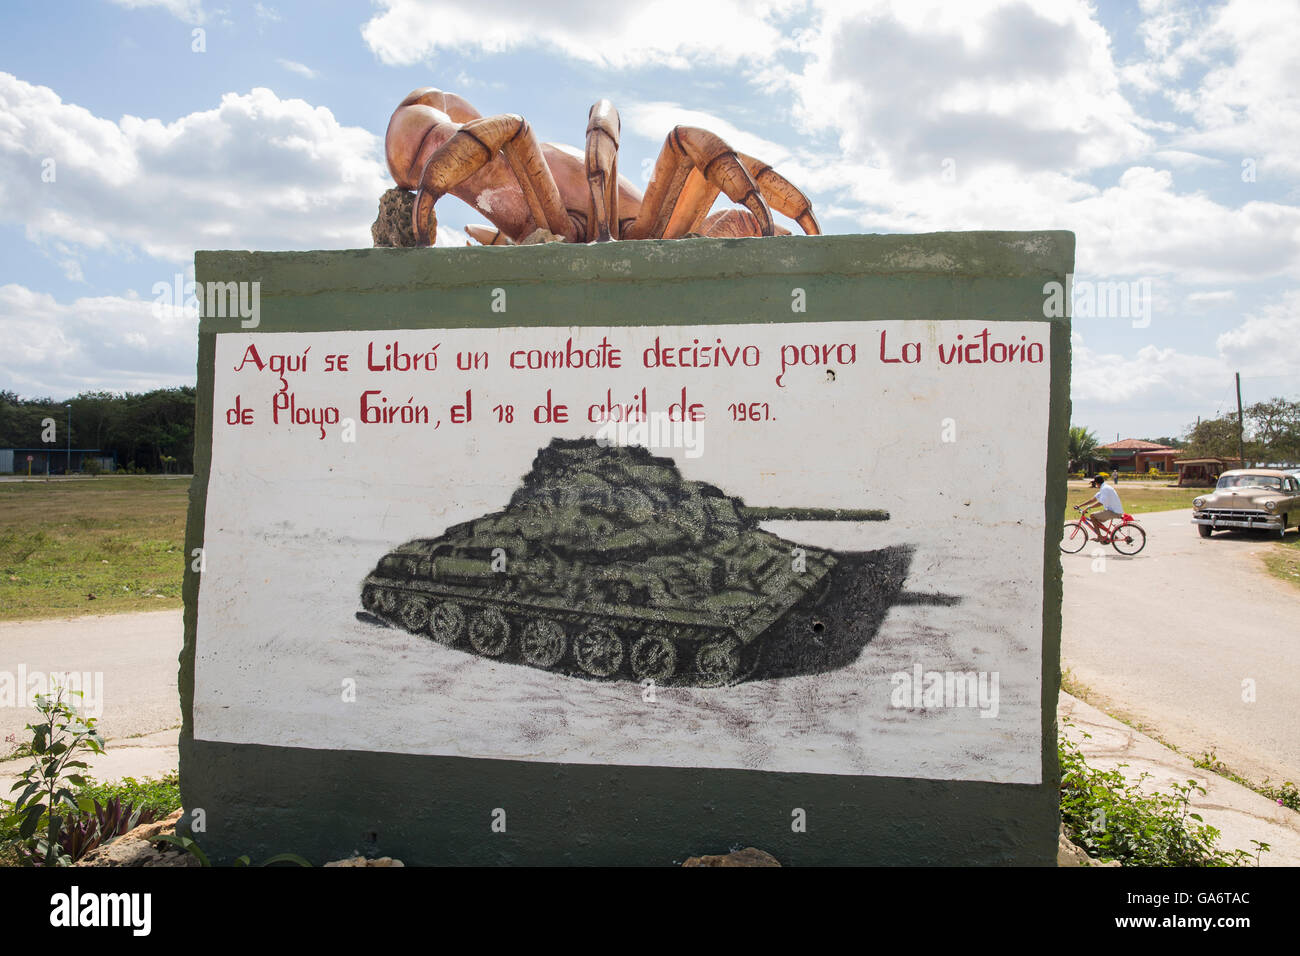 Modest monument commemorating Cuba's victory over the U.S. in the Bay of Pigs incident. - Stock Image